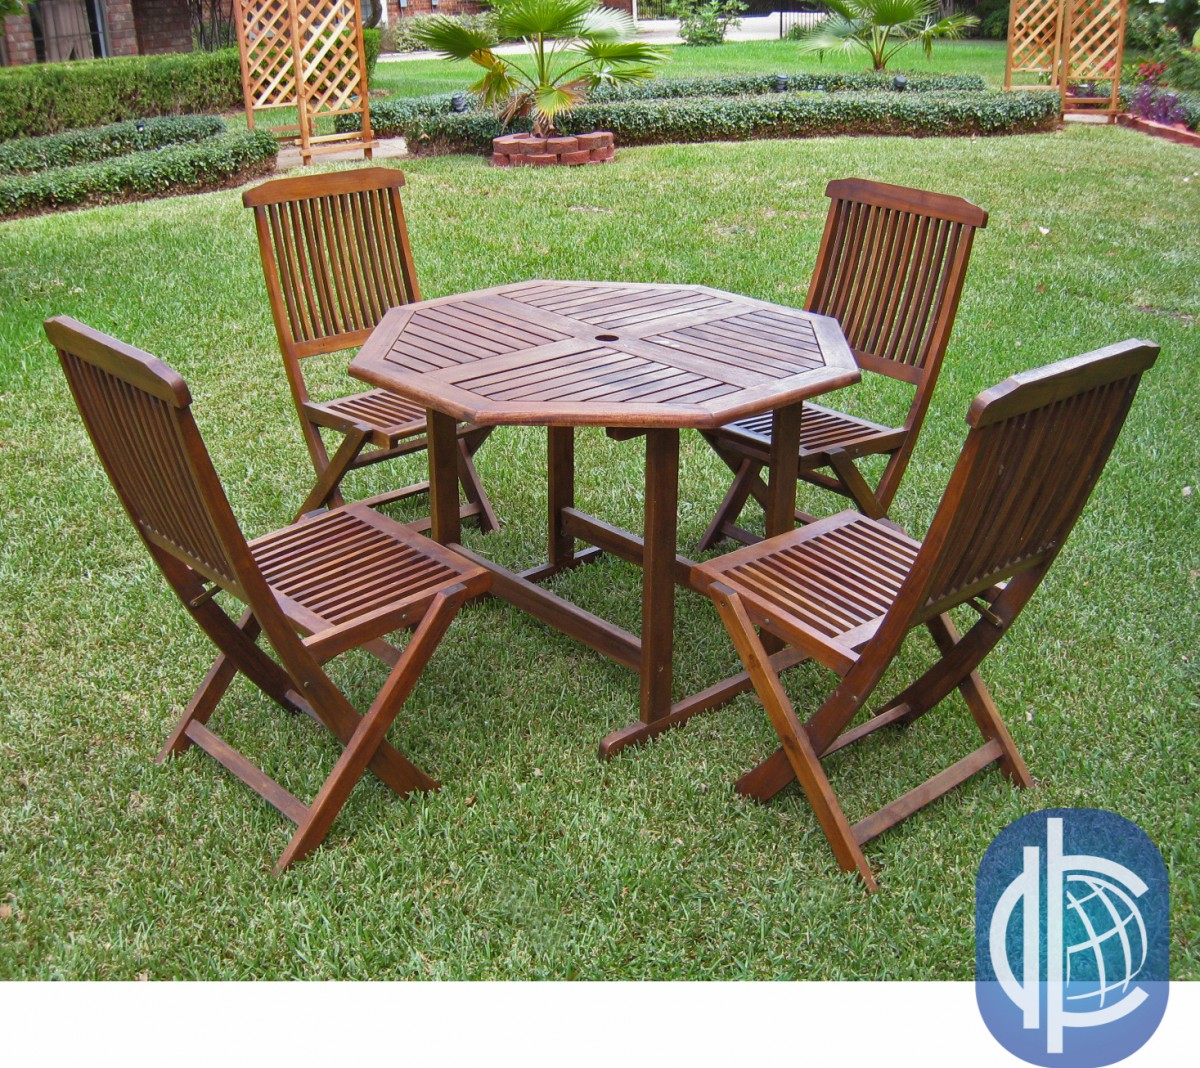 acacia 5 piece stowaway patio furniture set patio table